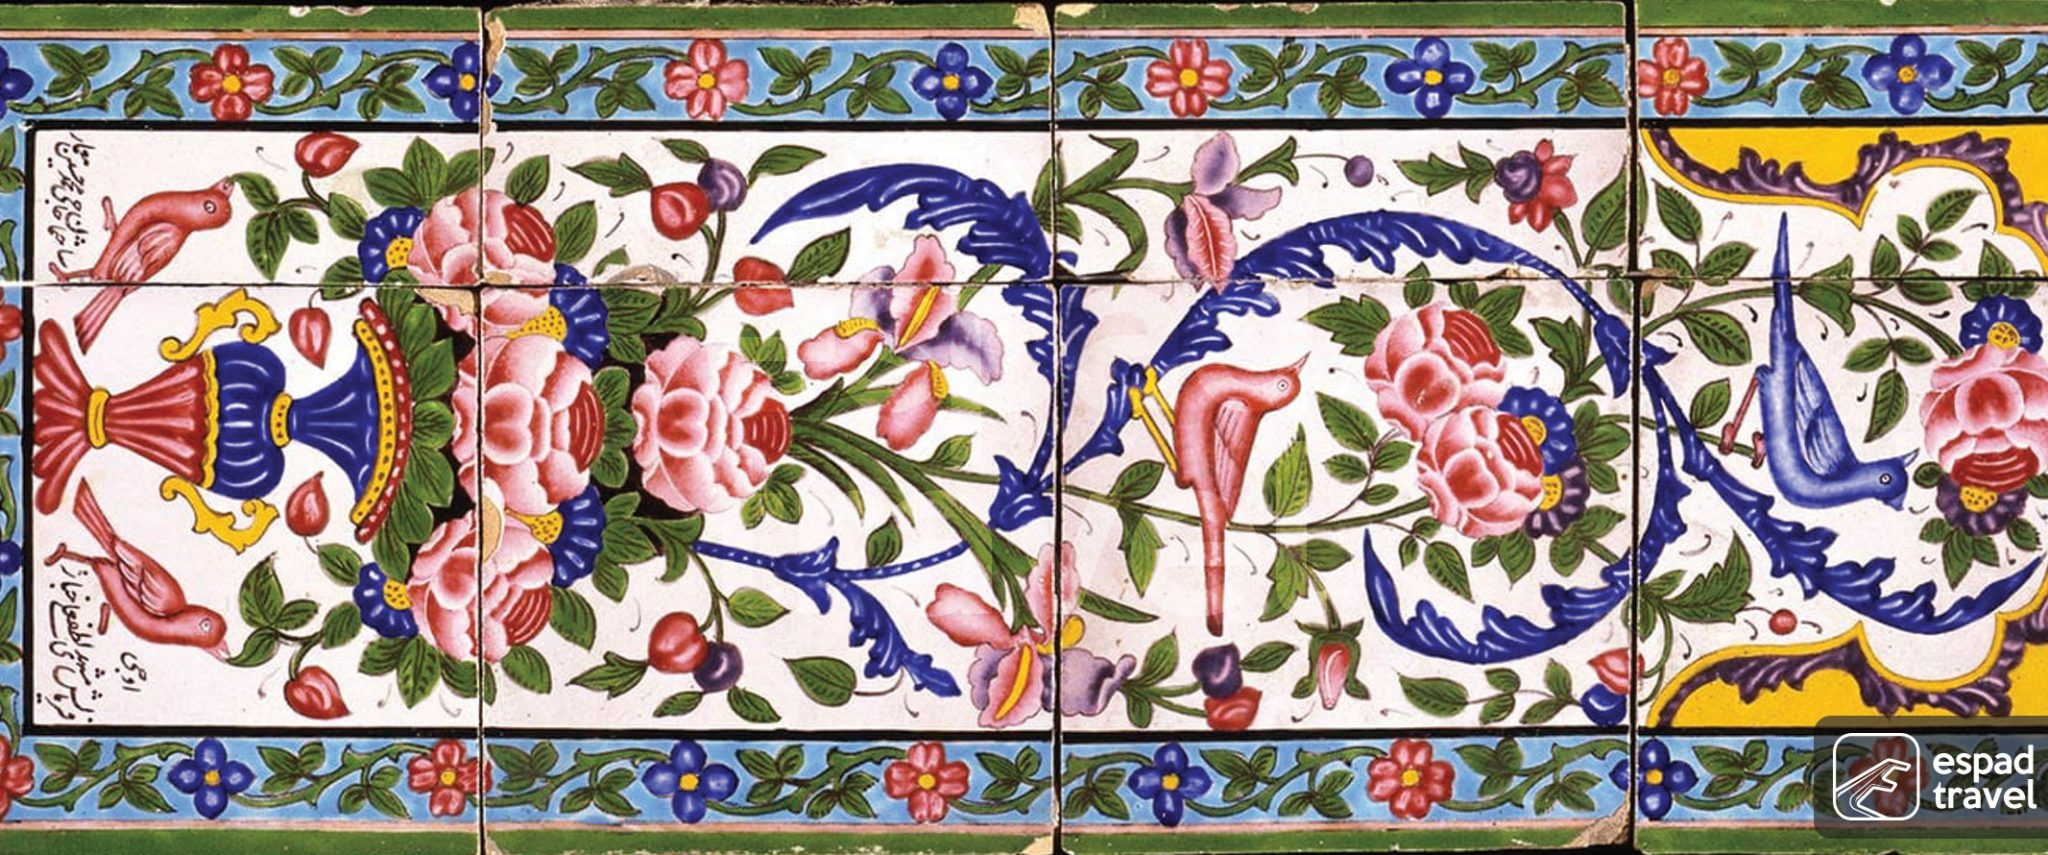 tile works in iran